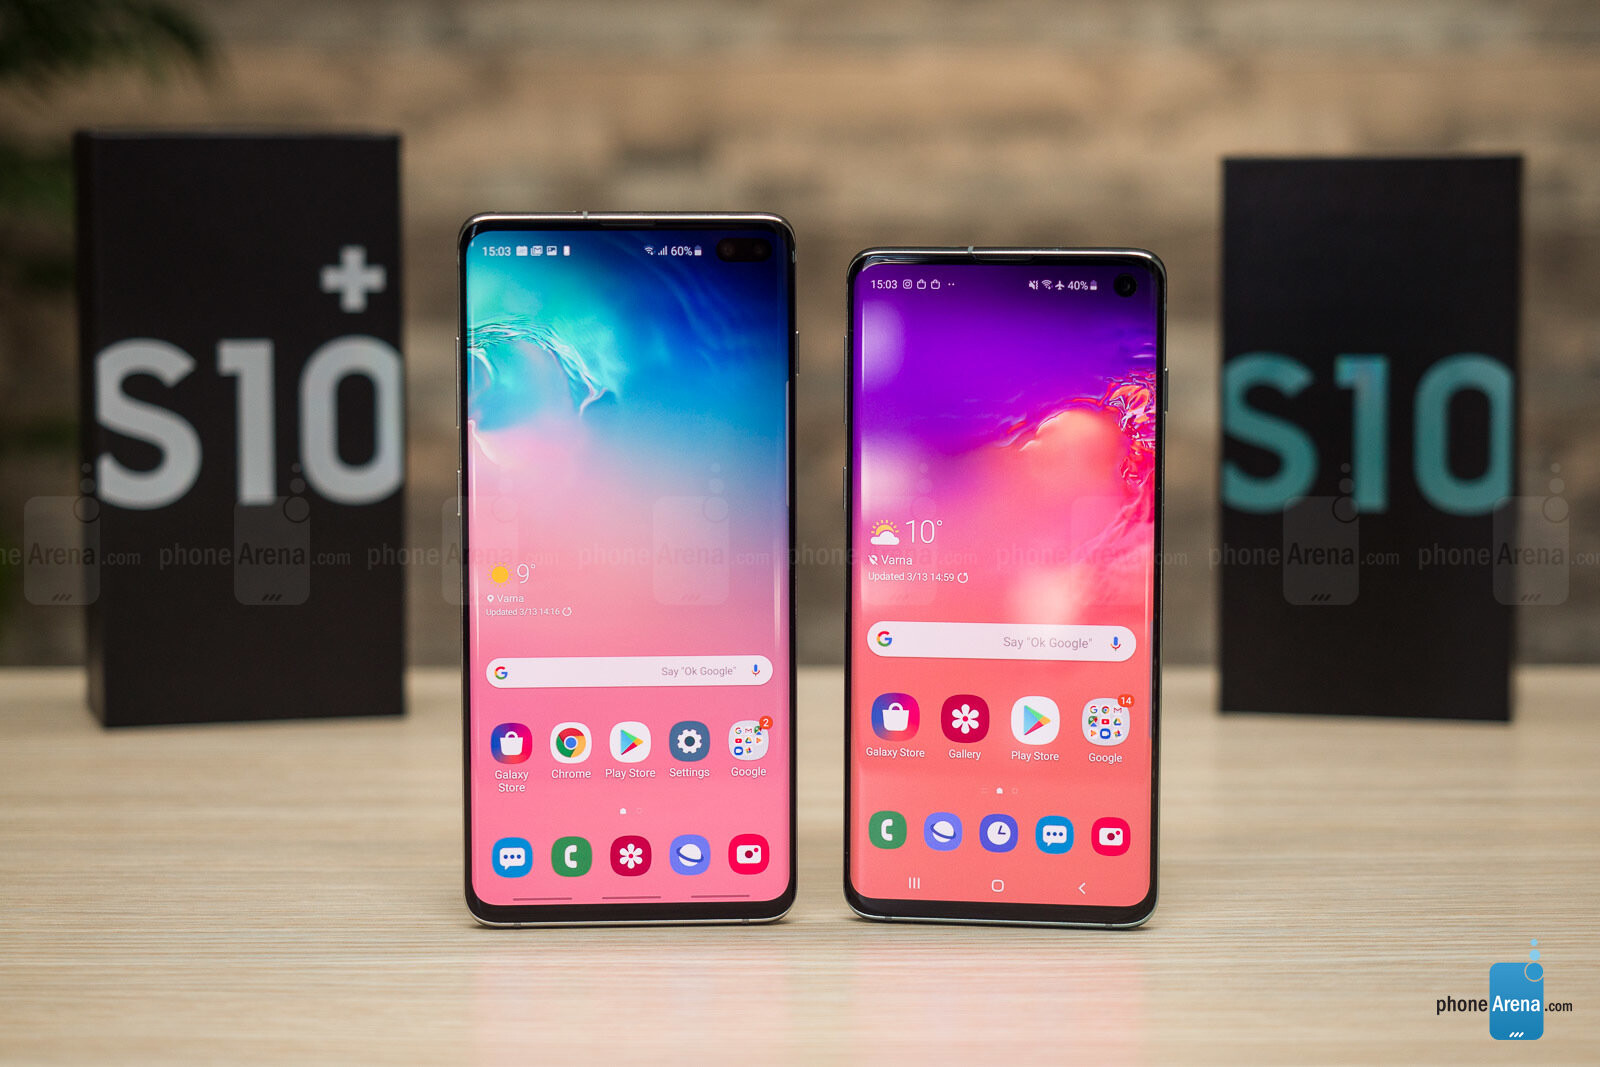 Galaxy S10 Exynos vs S10 Snapdragon: Which is better